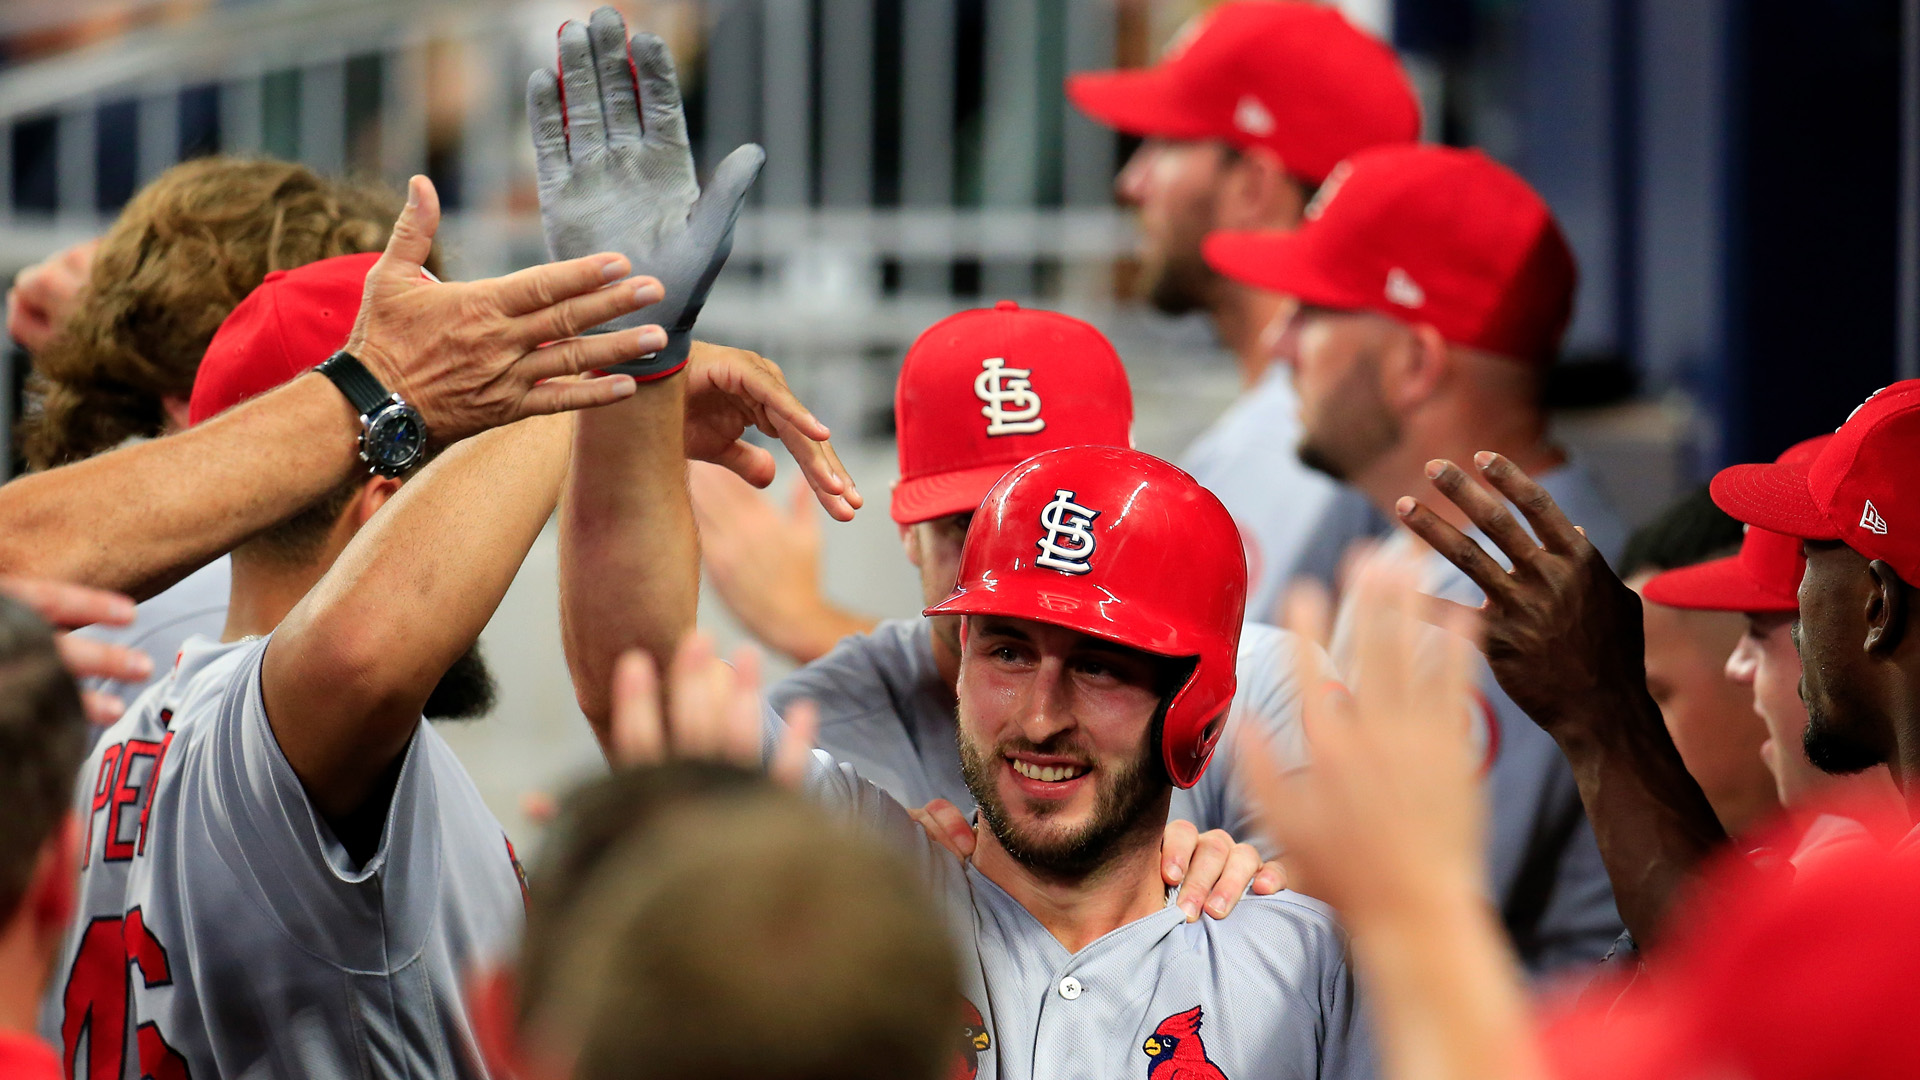 MLB wrap: Brewers allow Cardinals to inch closer with loss to Reds